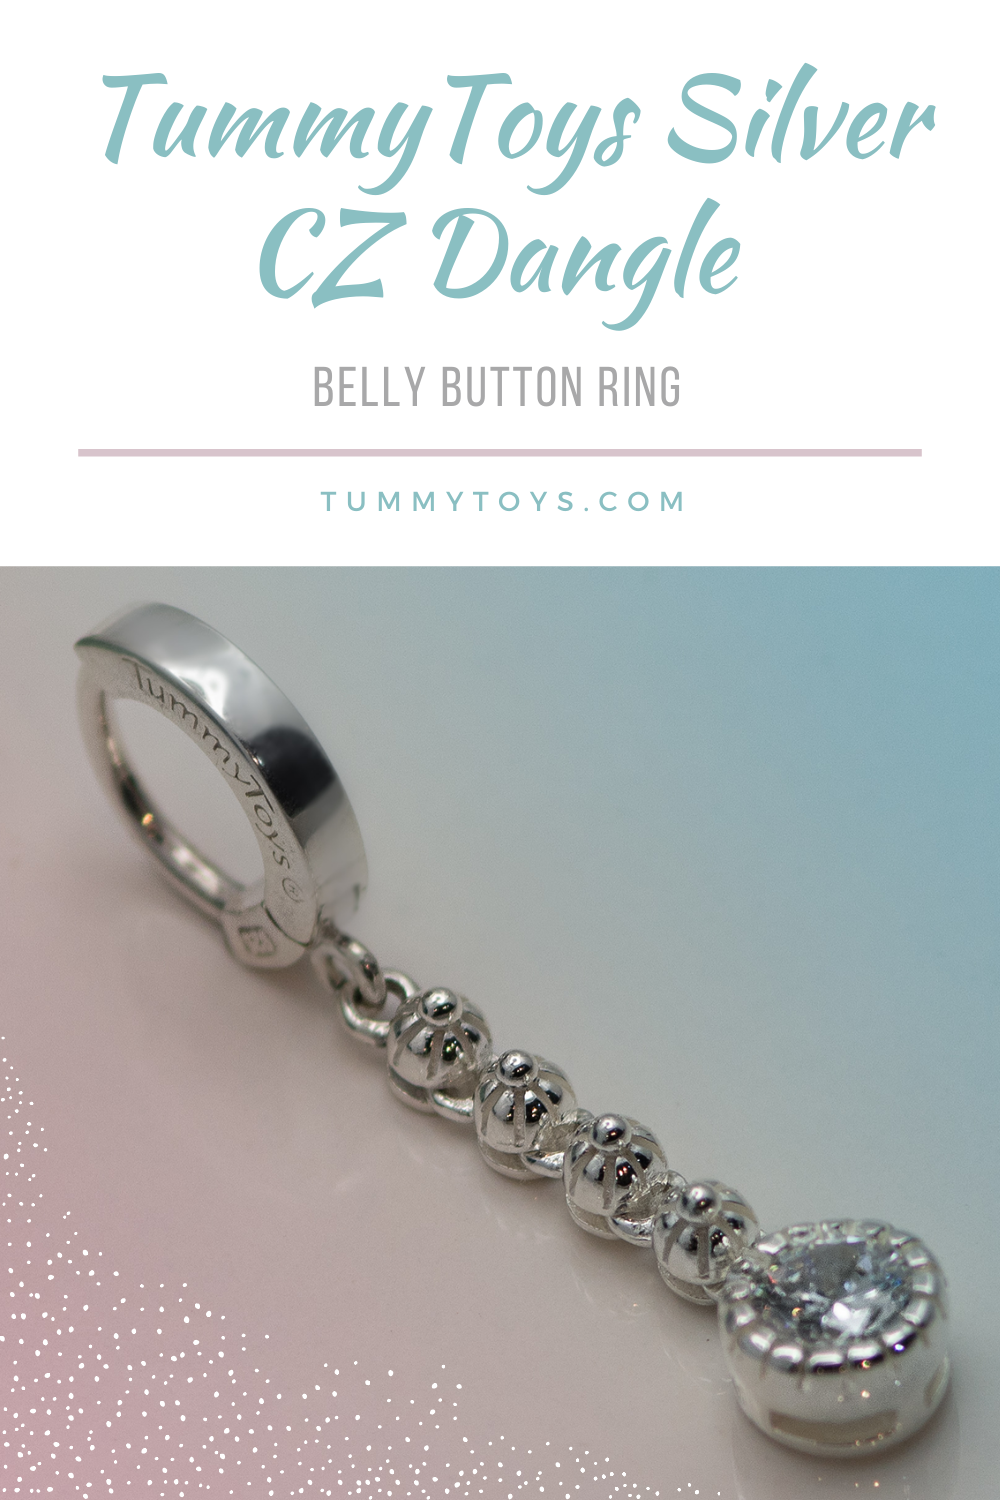 Here we have a lovely and long solid silver belly ring. With a silver flower chain with a 7mm CZ at the bottom, The Charm is 1 inch long (25mm) Total Length of TummyToy is 1 9/16 inch (38mm).  #bellyrings #bellybuttonring #navelpiercing #tummytoys #bodyjewelry #bellybuttonpiercing #piercings #bodypiercings #navelrings #piercinginspo#bellybutton #naveljewelry #diamonds #beautiful #jewelry